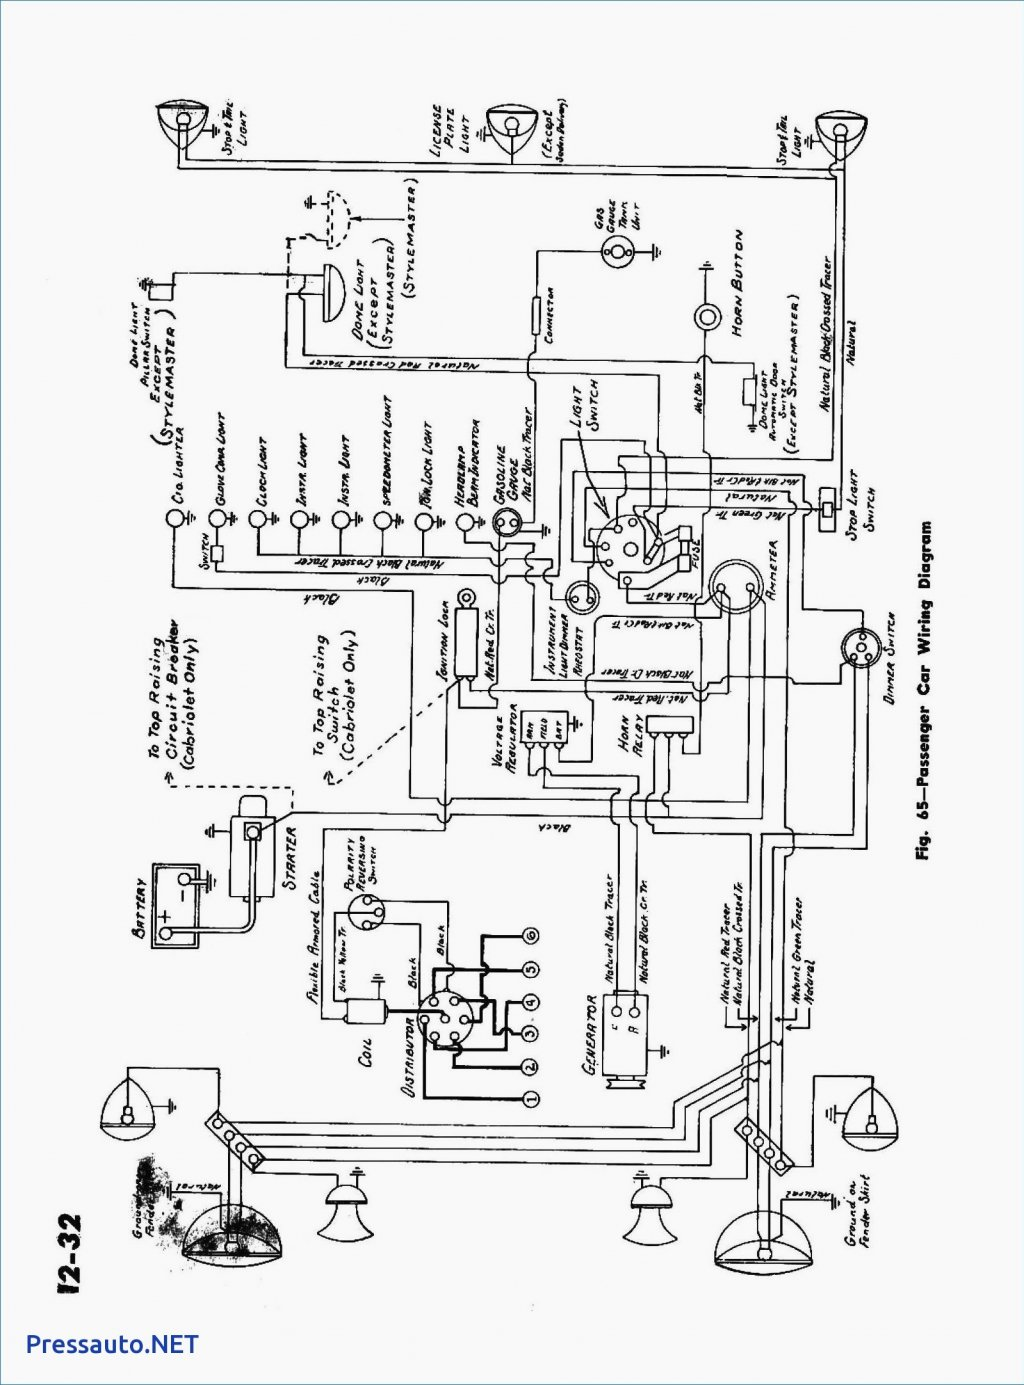 Circuit Diagram Reading